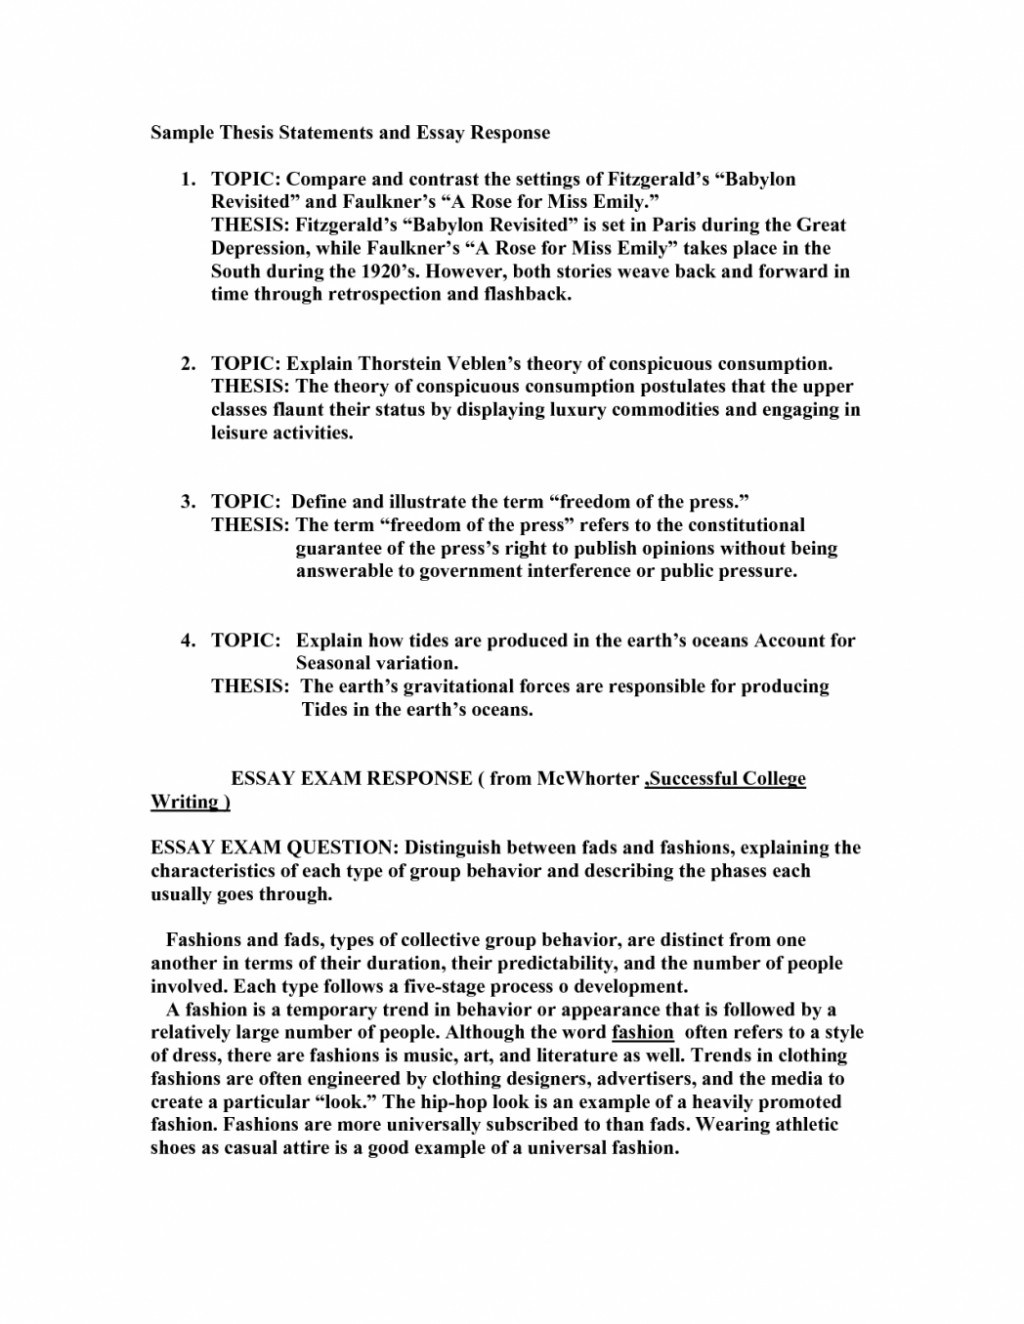 015 What Is Thesis Statement In An Essay Example Of How To Write For About Yourself 6na1p Argumentative Step By Expository High School Ppt Informative Analysis Pdf Fascinating A The Purpose Large